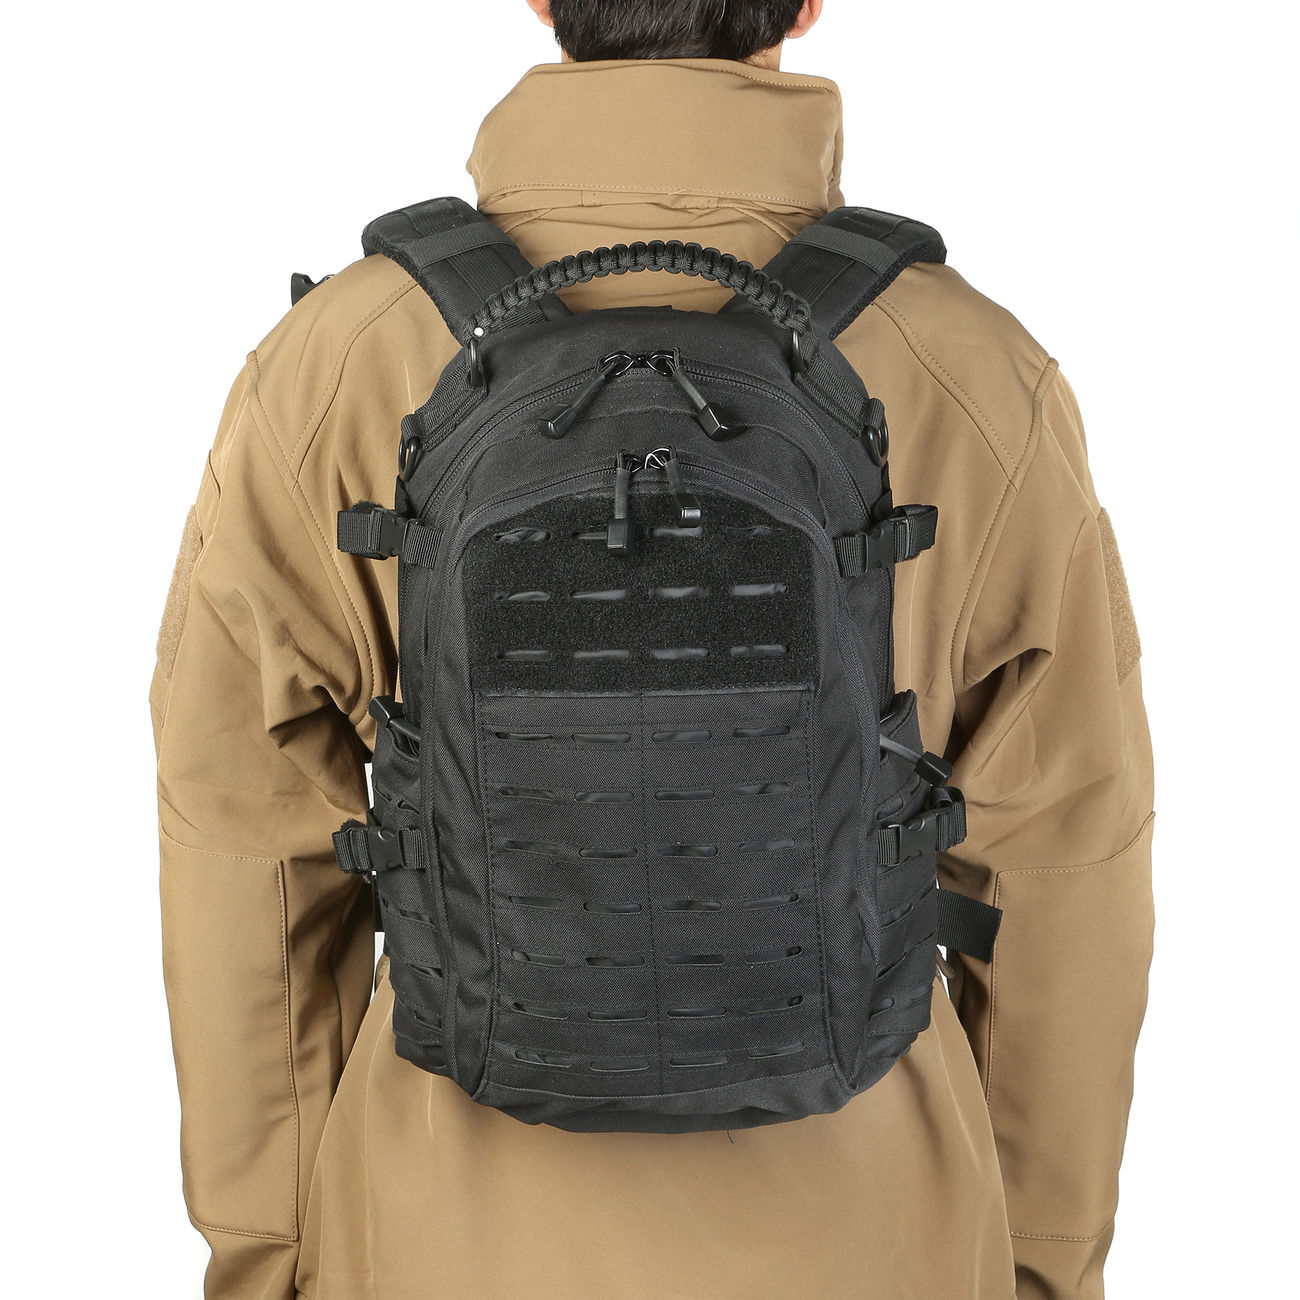 Mil-Tec Rucksack Mission Pack Laser Cut Small schwarz 10